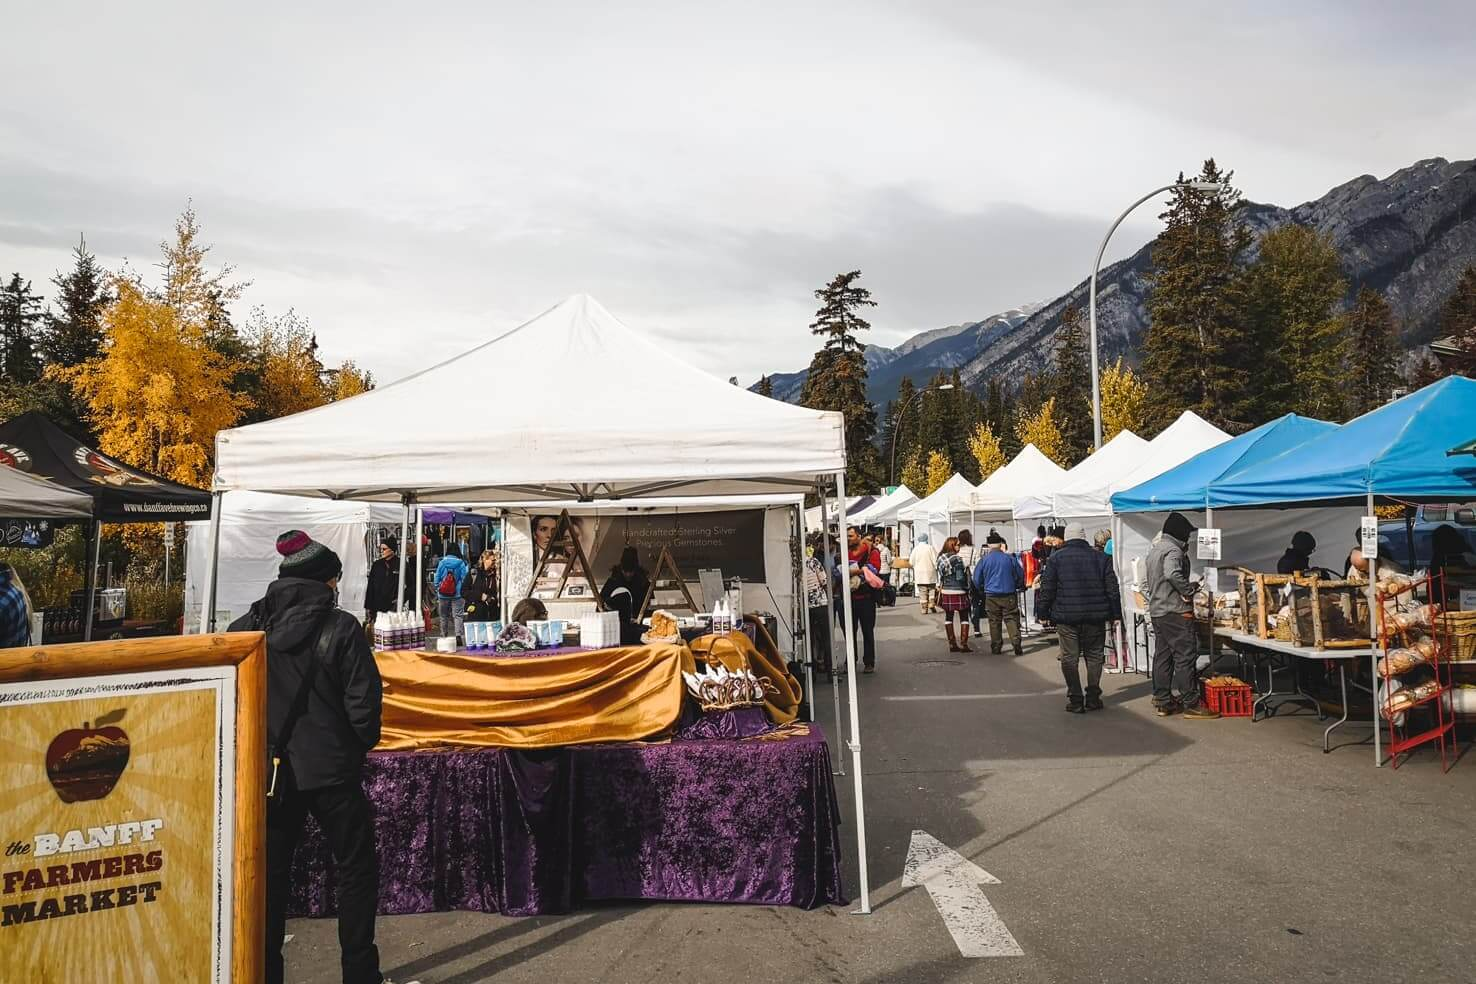 100 best things to do in Banff National Park, Canada - Banff Farmer's Market